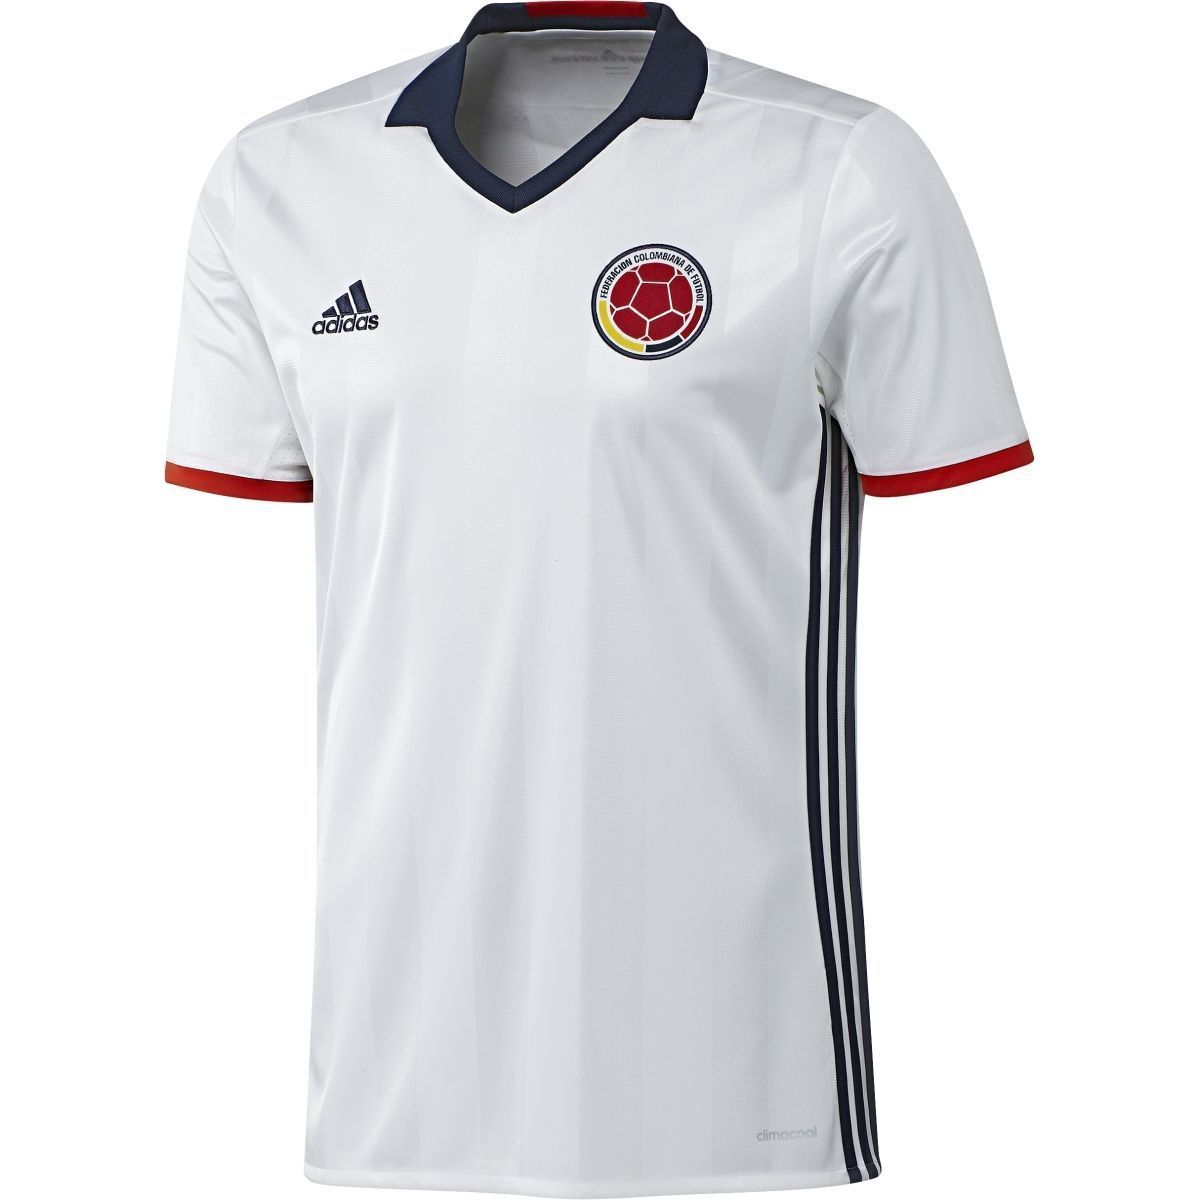 d35d8b9b999 Adidas Colombia Home Jersey Copa America and 50 similar items. 57